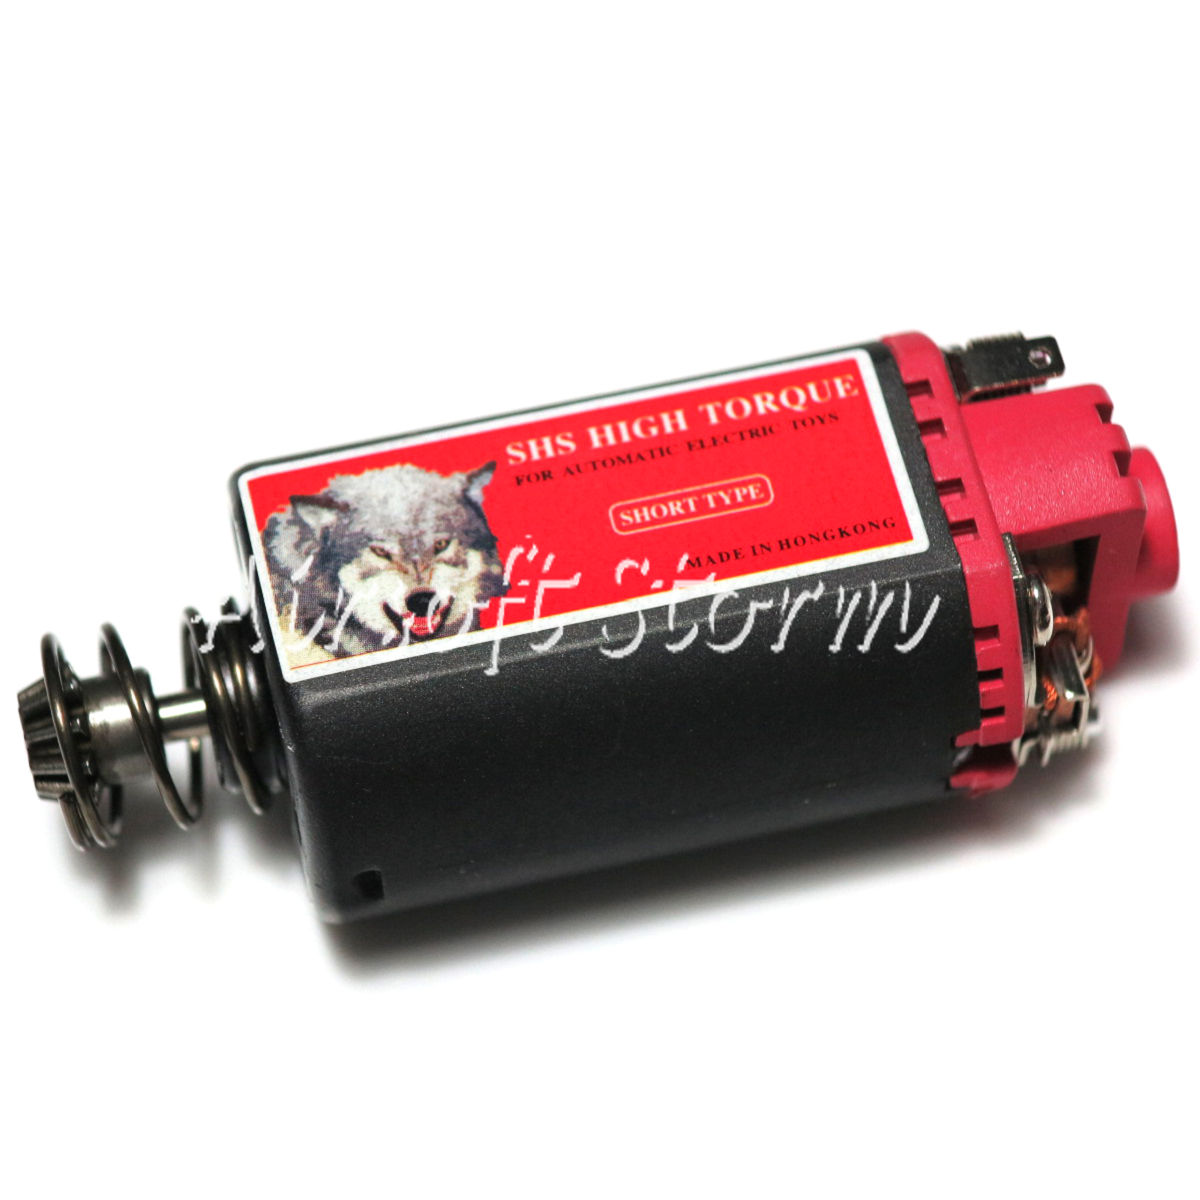 Airsoft Tactical Gear SHS 057 High Torque AEG Motor (Short Type)